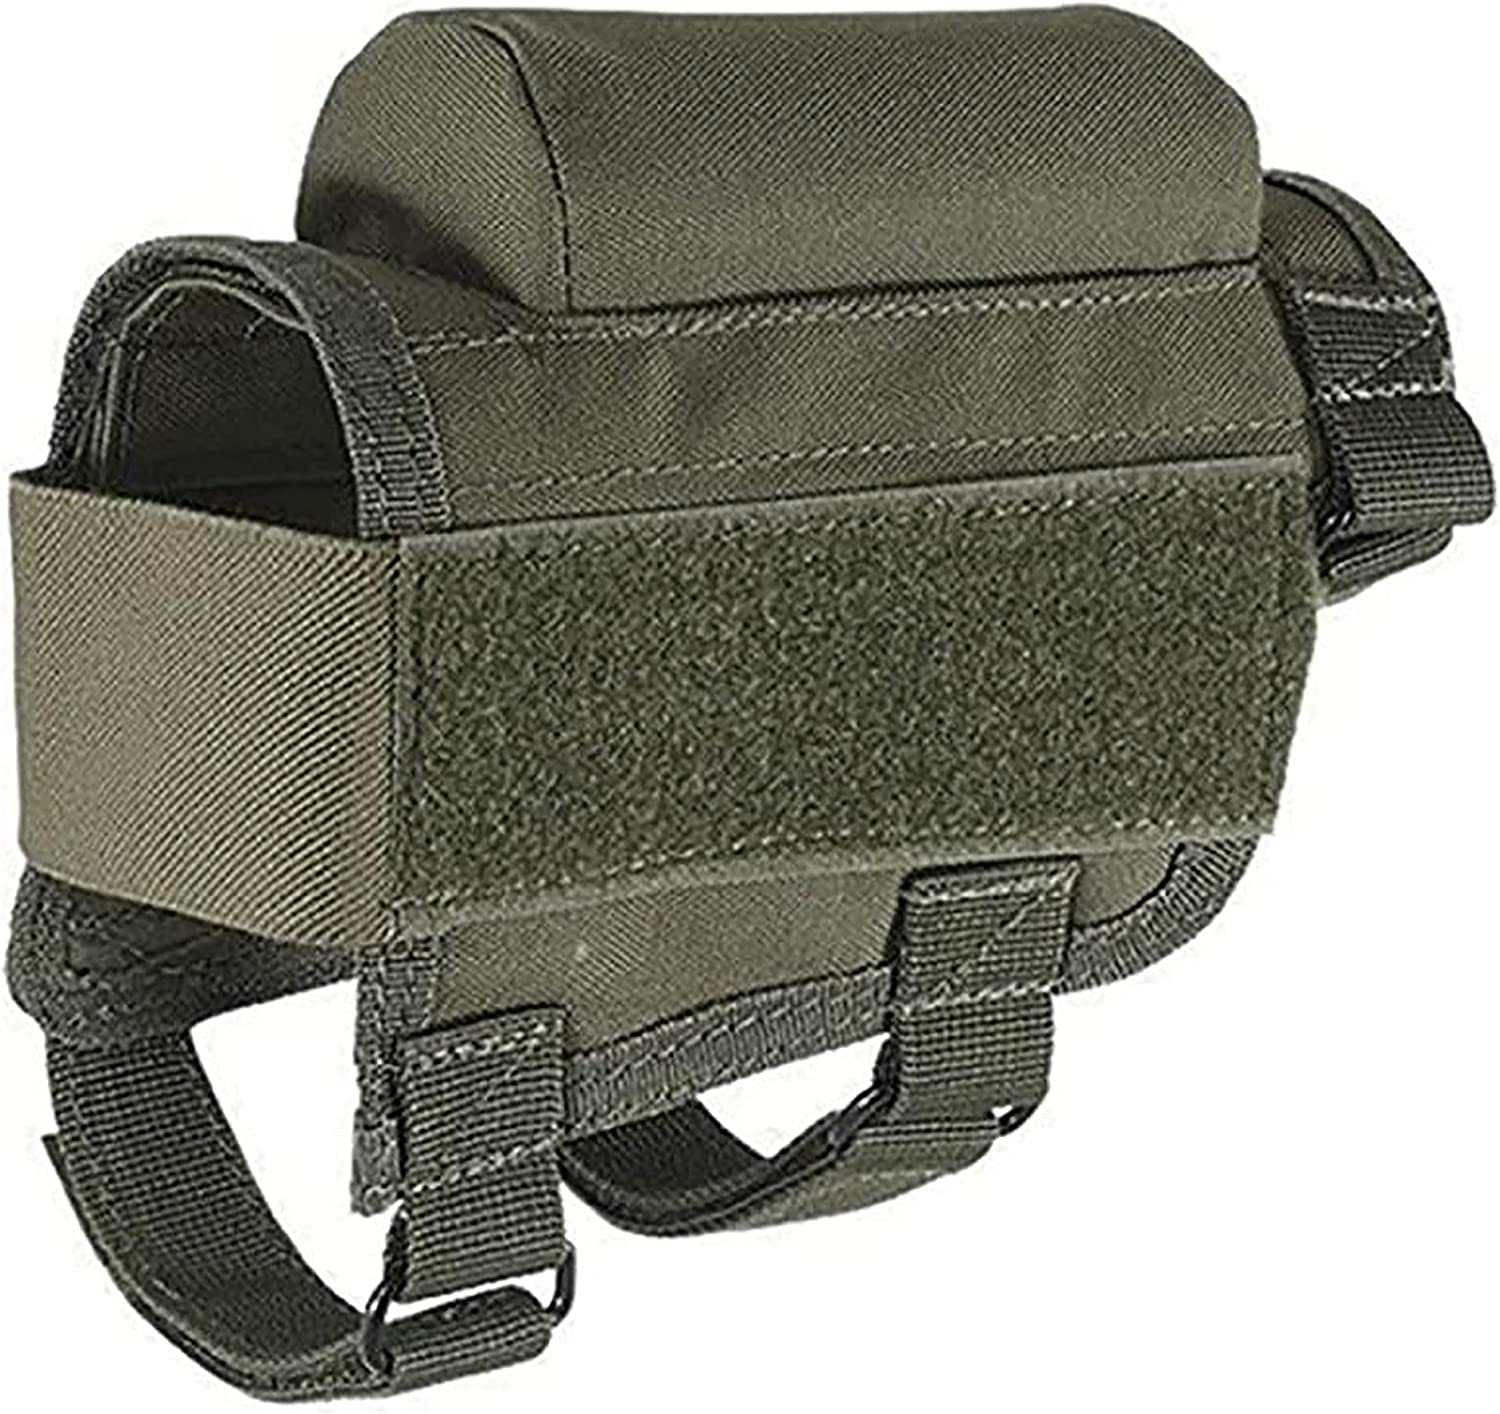 GZJXCCL New Outdoor Multifunctional Tactical Bullet Bag, Advance